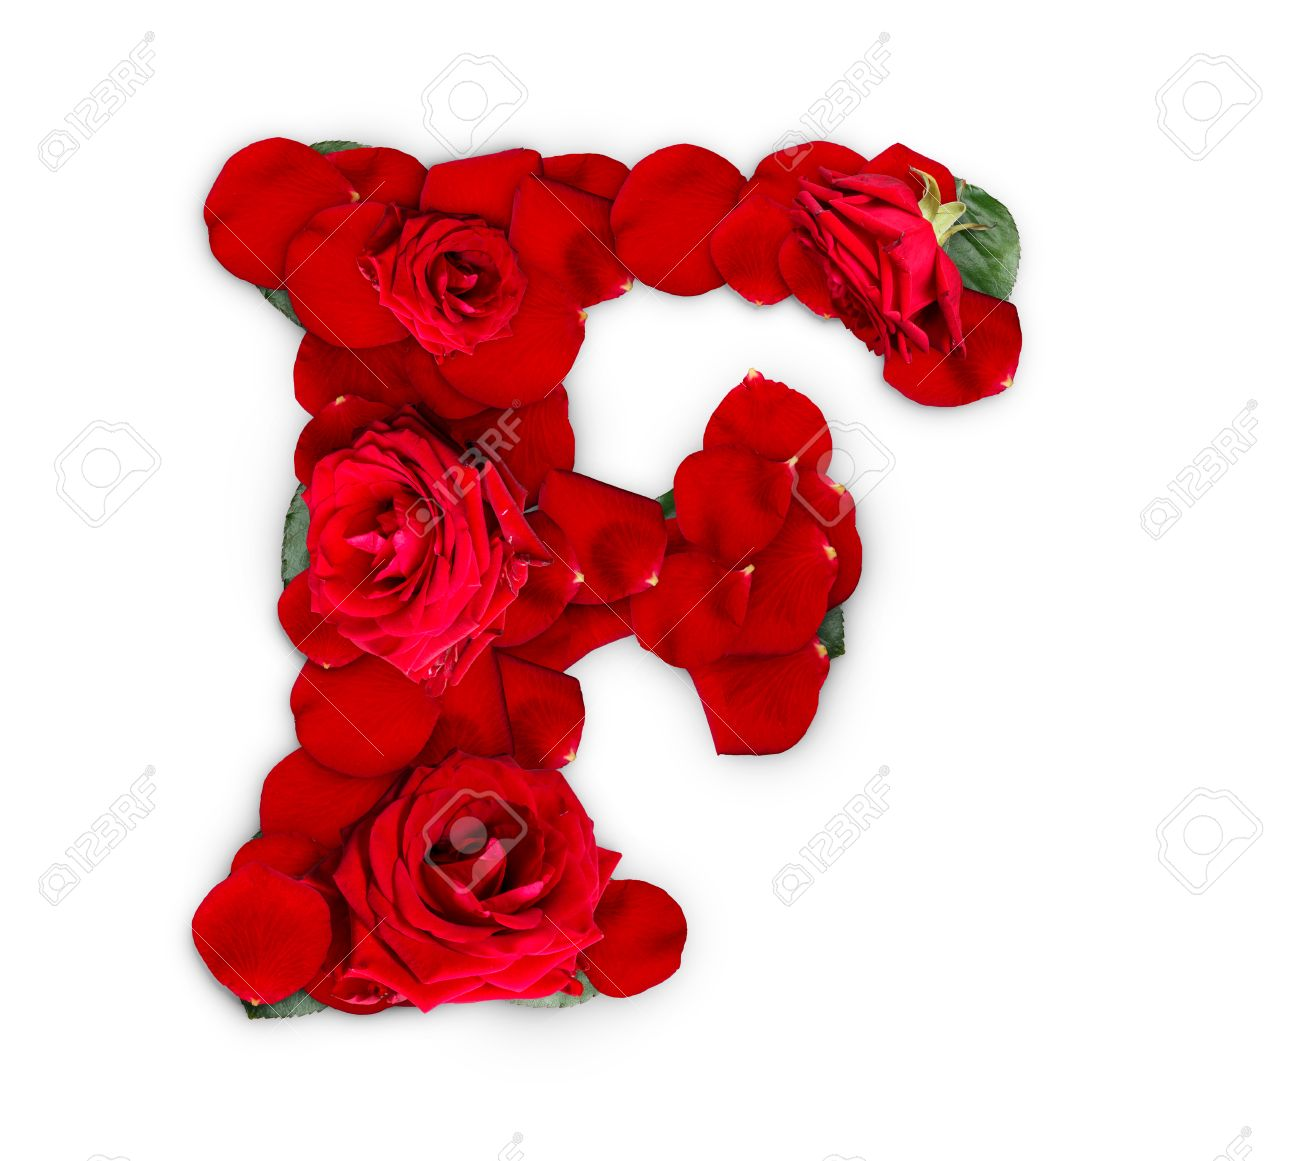 Letter F Made From Red Roses And Petals Isolated On A White